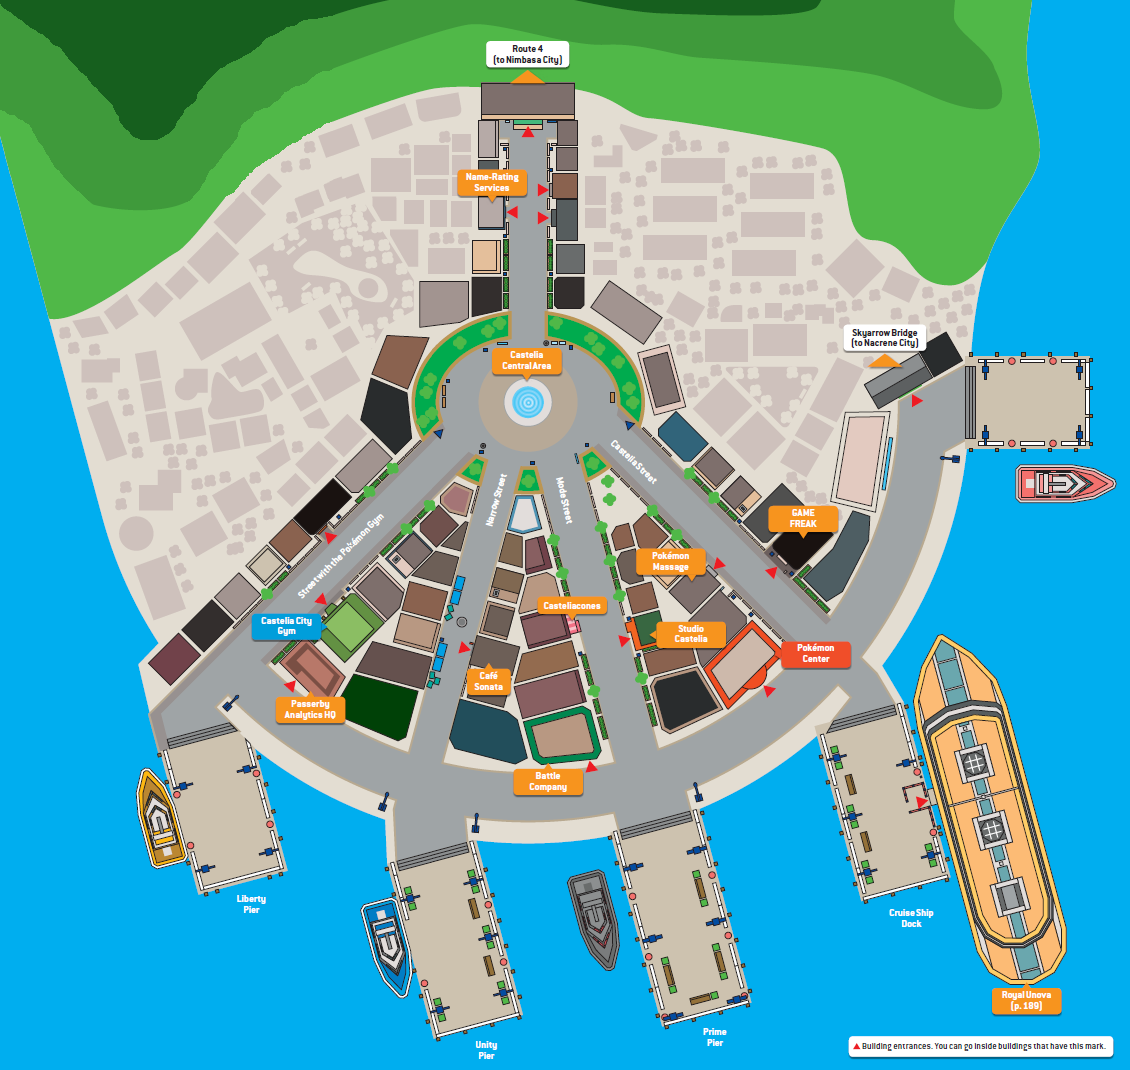 Image Map of Castelia Citypng Pokmon Wiki FANDOM powered by